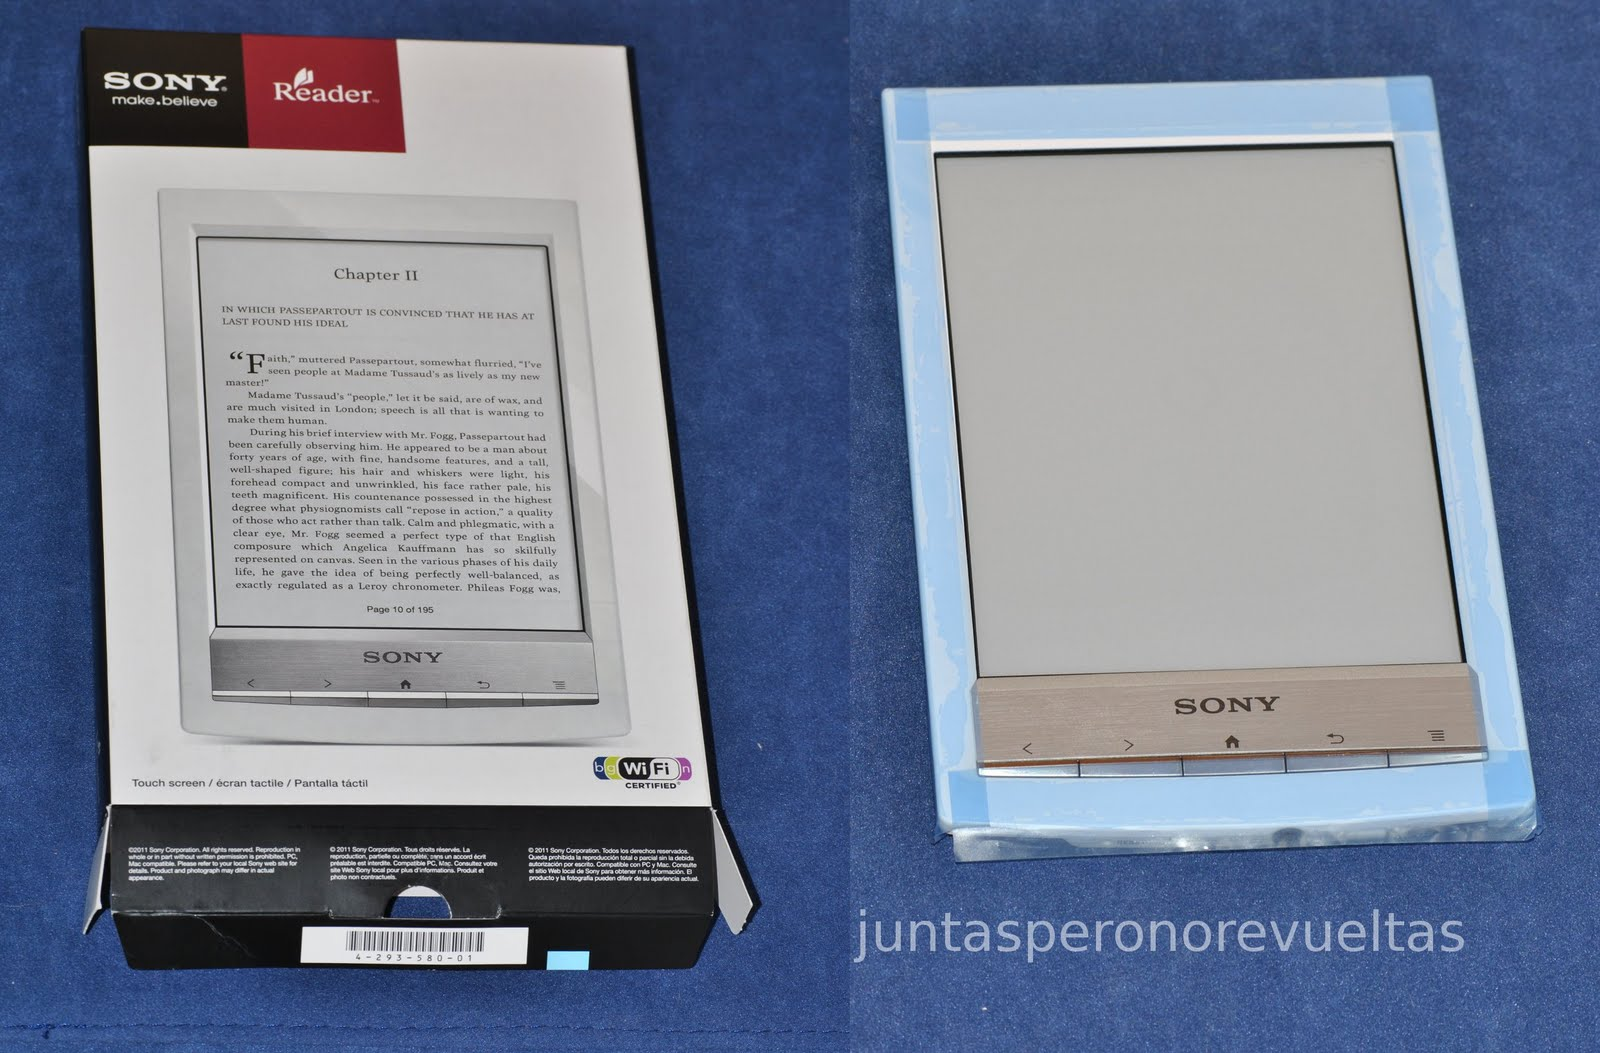 Libro Electronico Sony Prs T1 Juntas Pero No Revueltas Together Yet Apart Lector